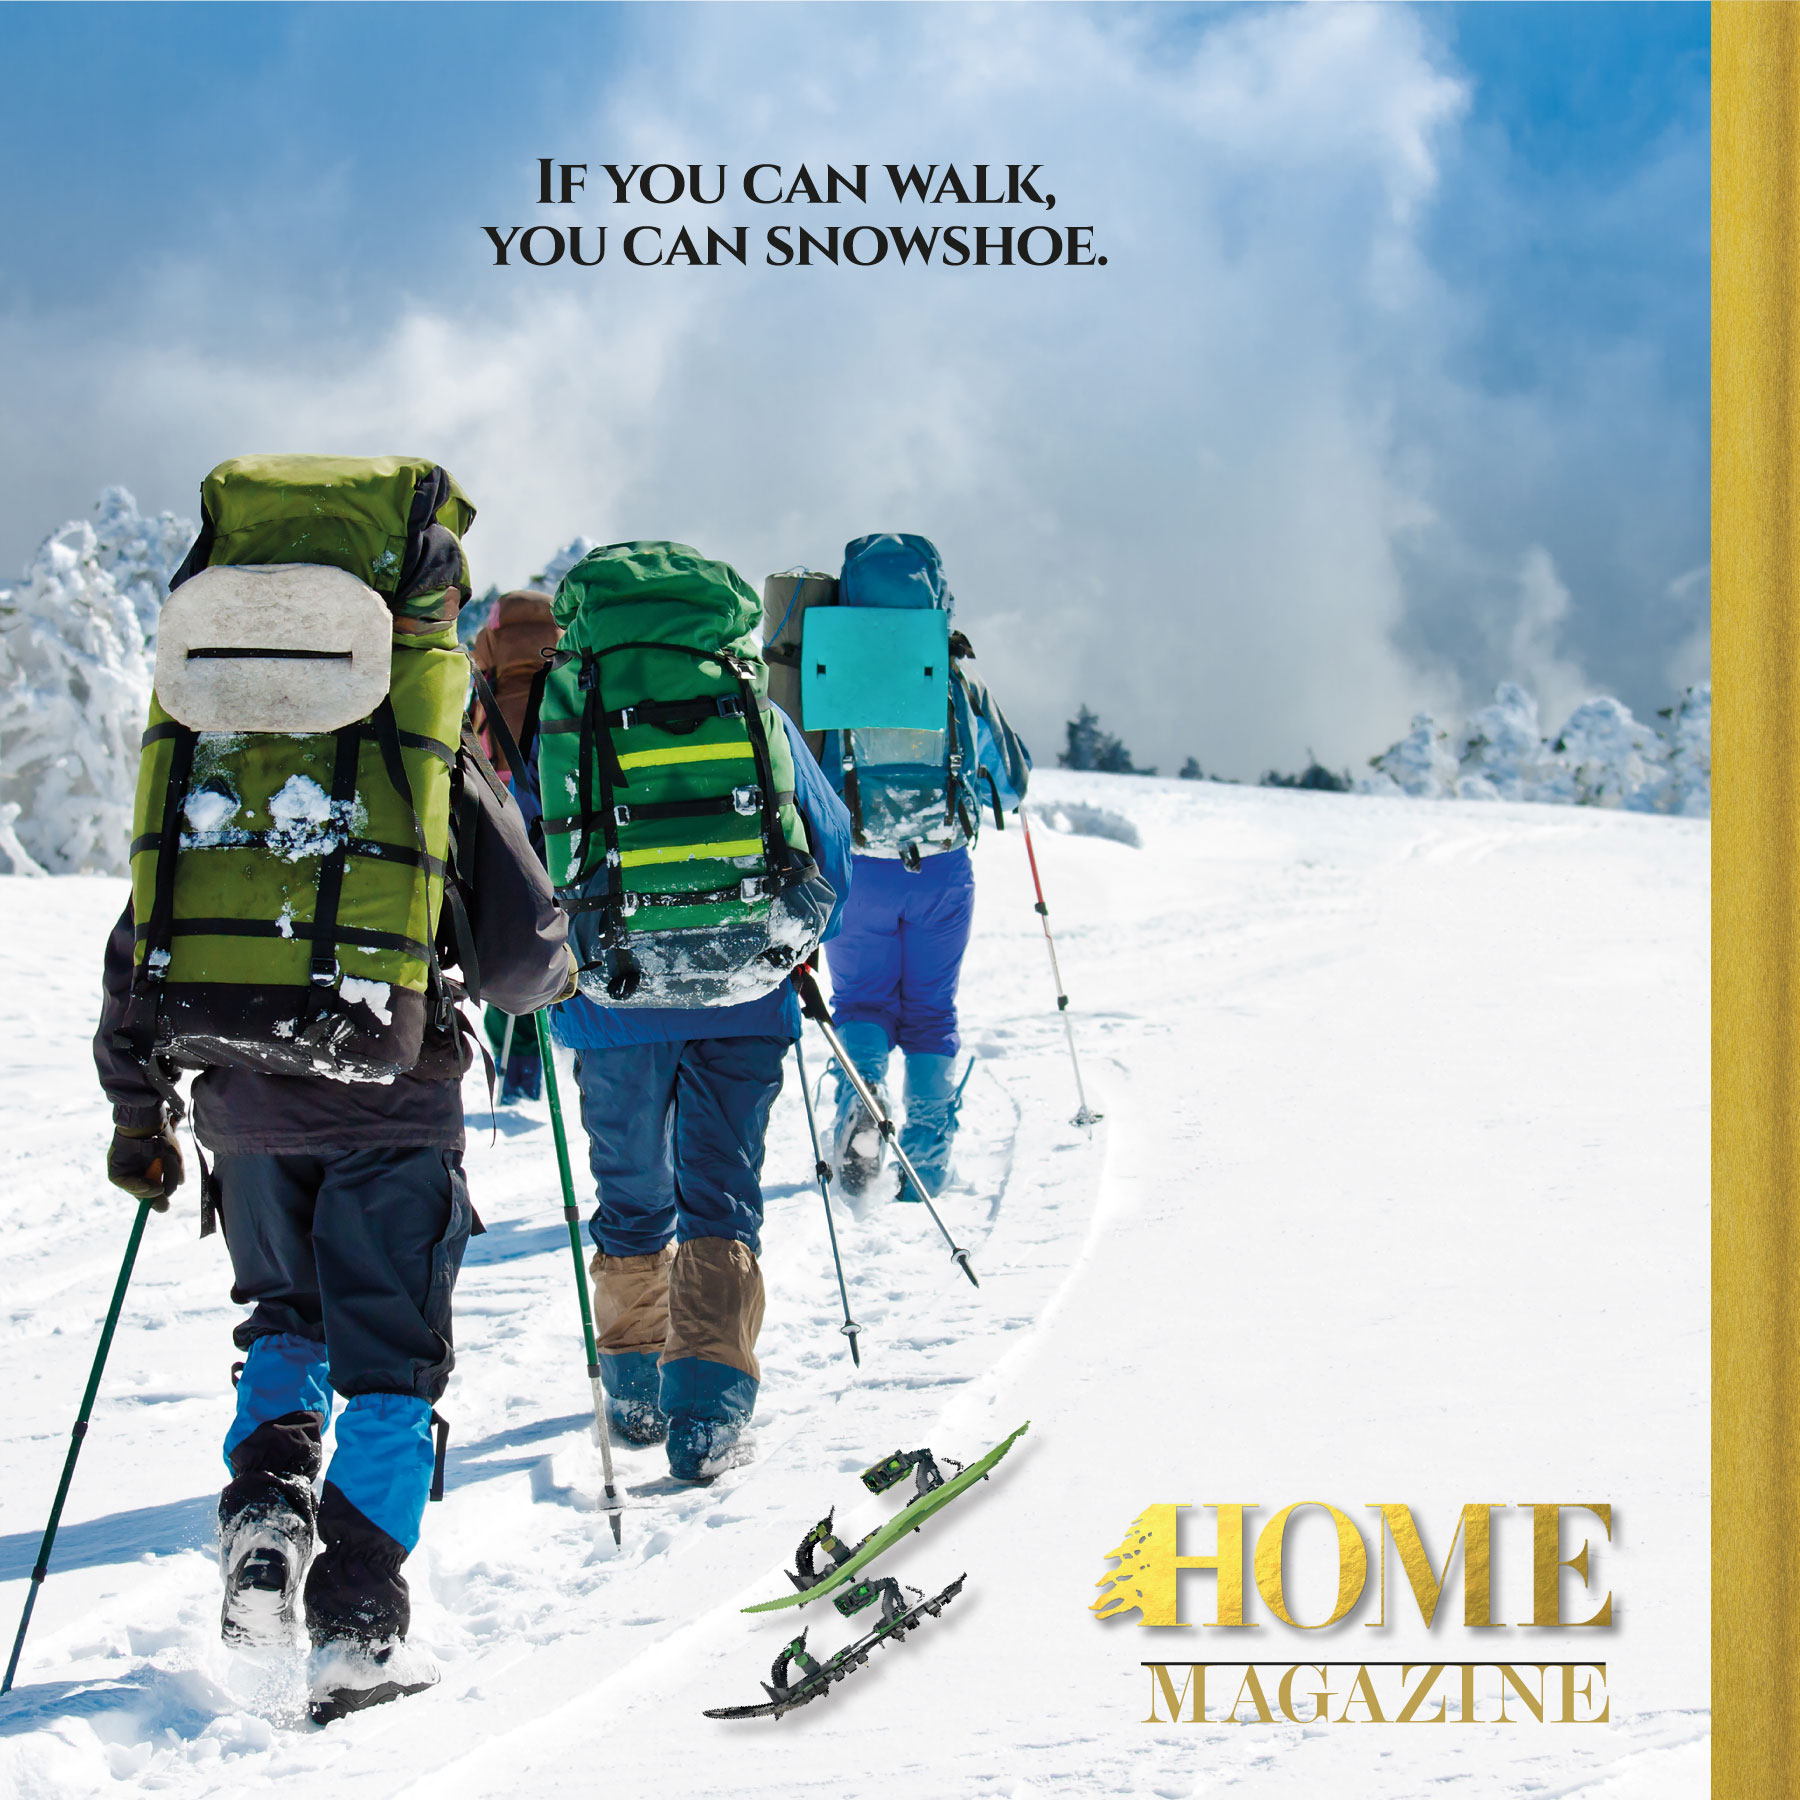 Spice Up Winter in Lebanon with Snowshoeing